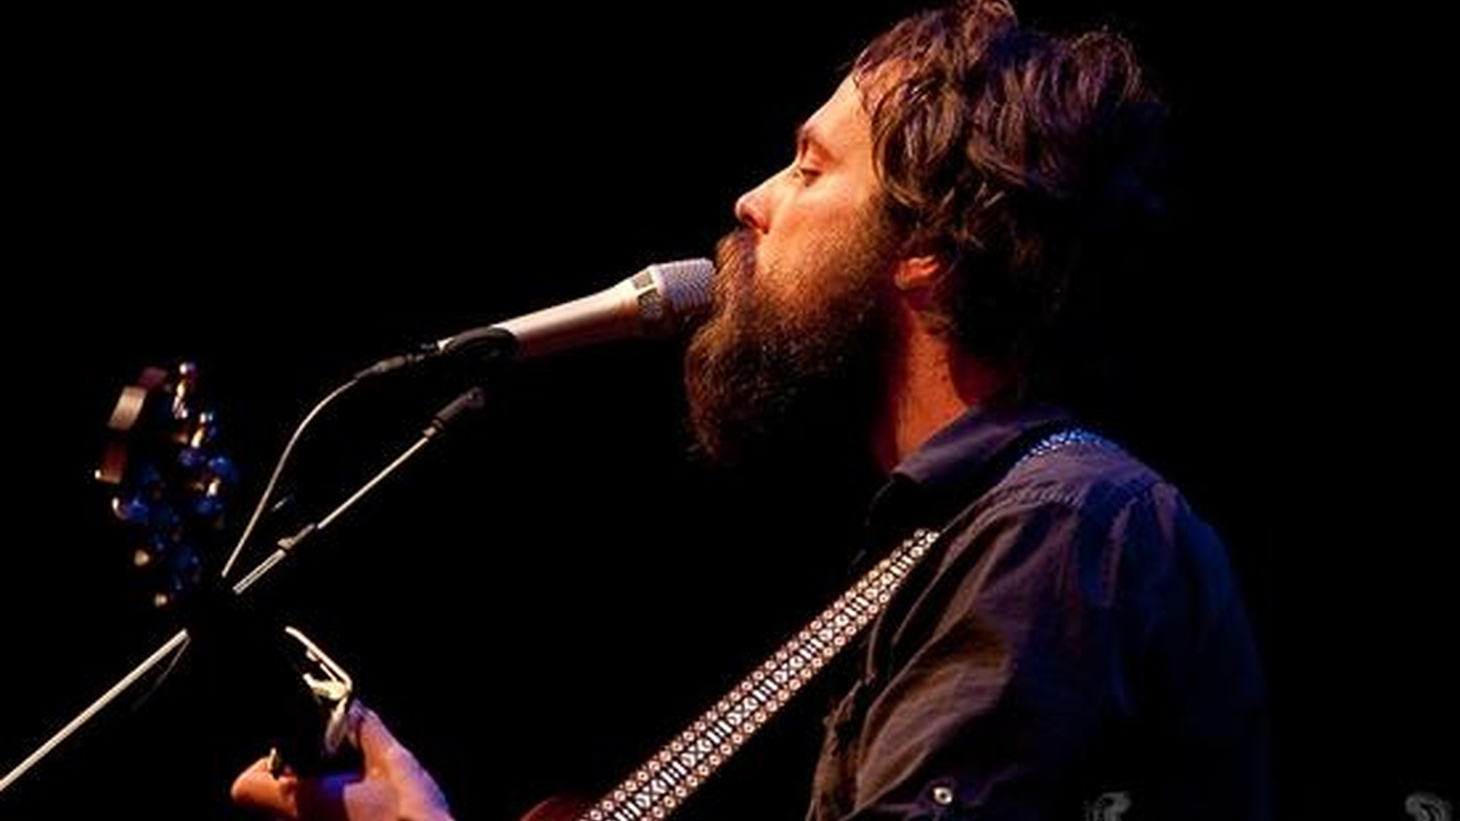 """Sam Beam, best known as Iron & Wine, really beefs up his sound on his new release, Kiss Each Other Clean. Backed by a large band and unexpected instrumentation, his tender melodies are complimented by sumptuous vocals. Today's Top Tune features his sister, Sarah Simpson, as back up vocalist on """"Half Moon."""""""